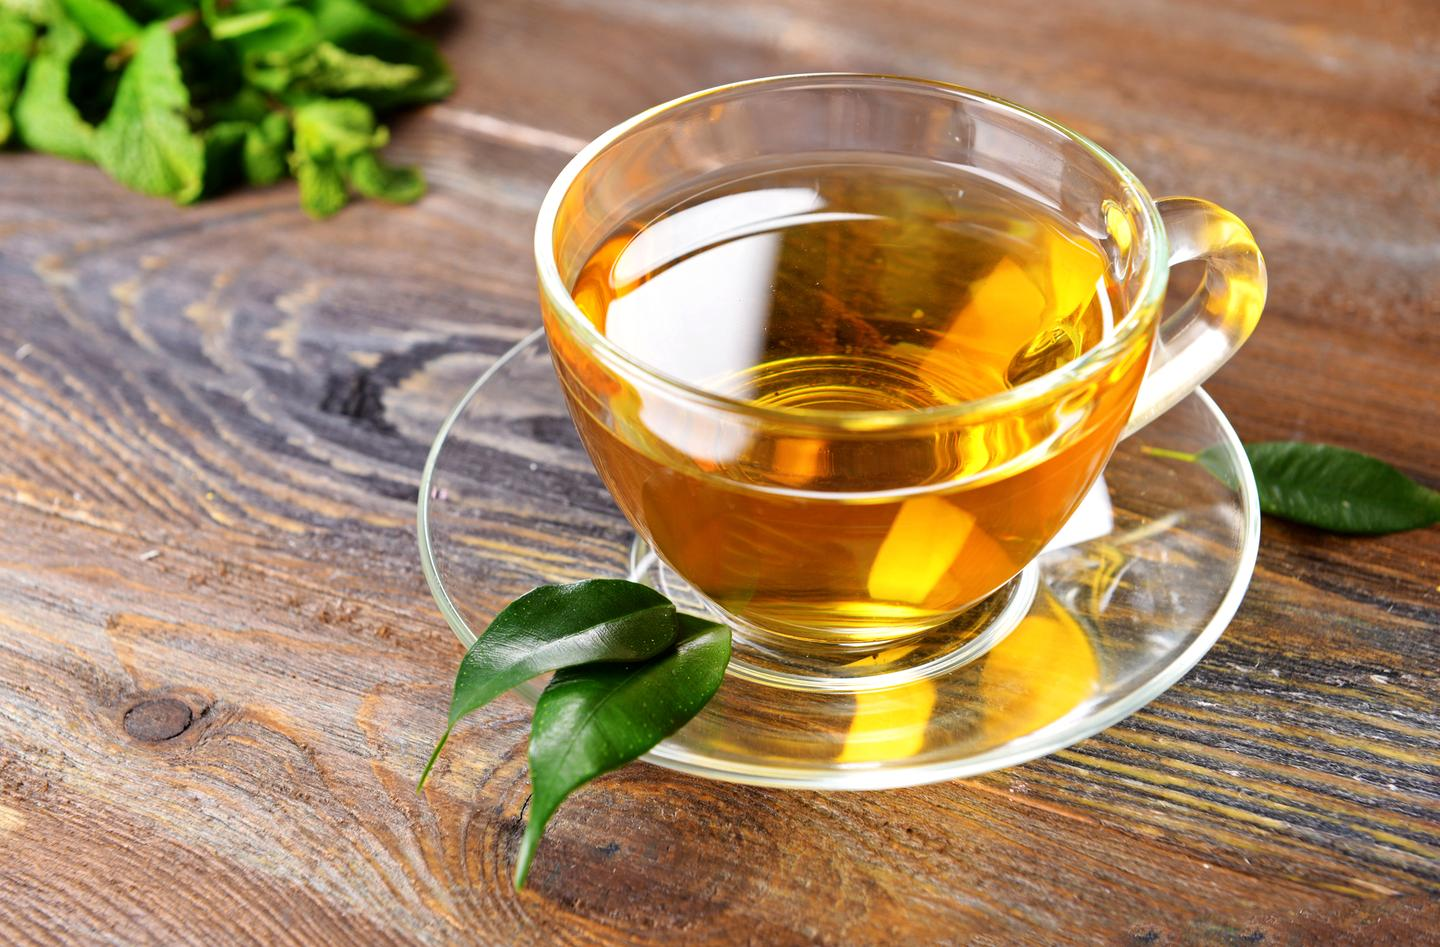 At least three cups of green tea per week was linked to longer lifespan in a Chinese study